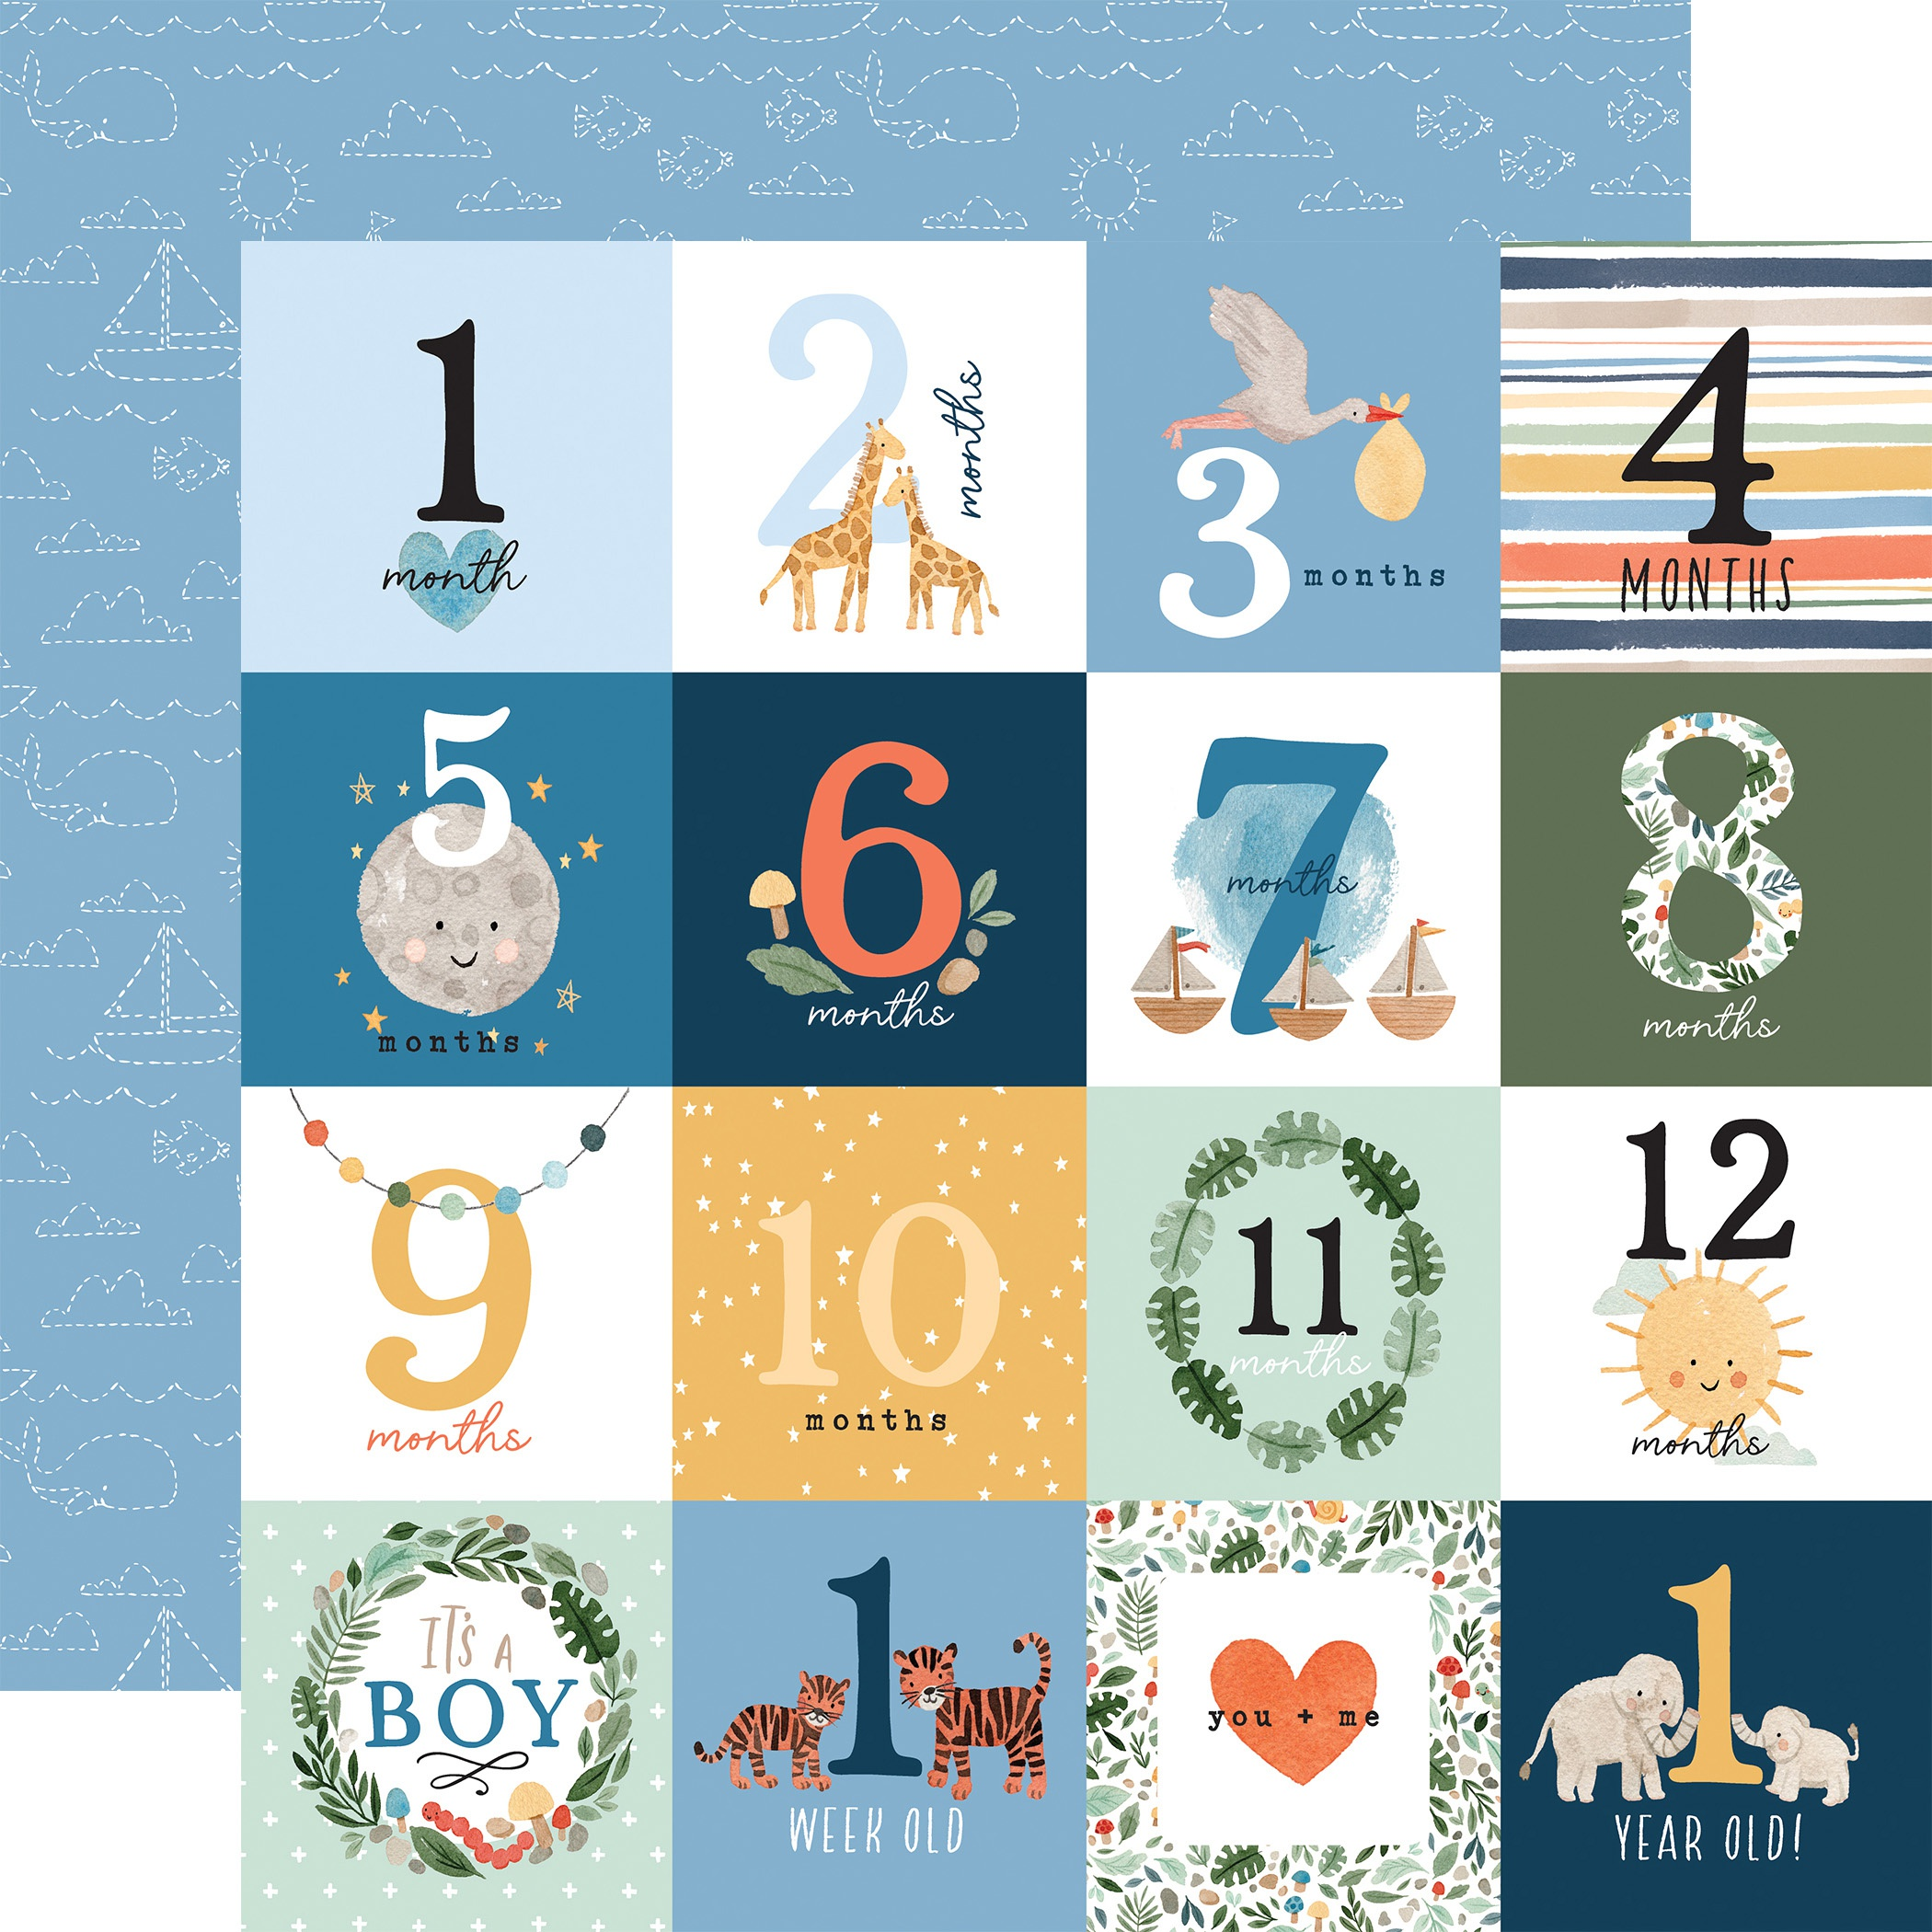 Echo Park - Welcome Baby Boy - MILESTONE JOURNALING CARDS - 12x12 Double-Sided Paper